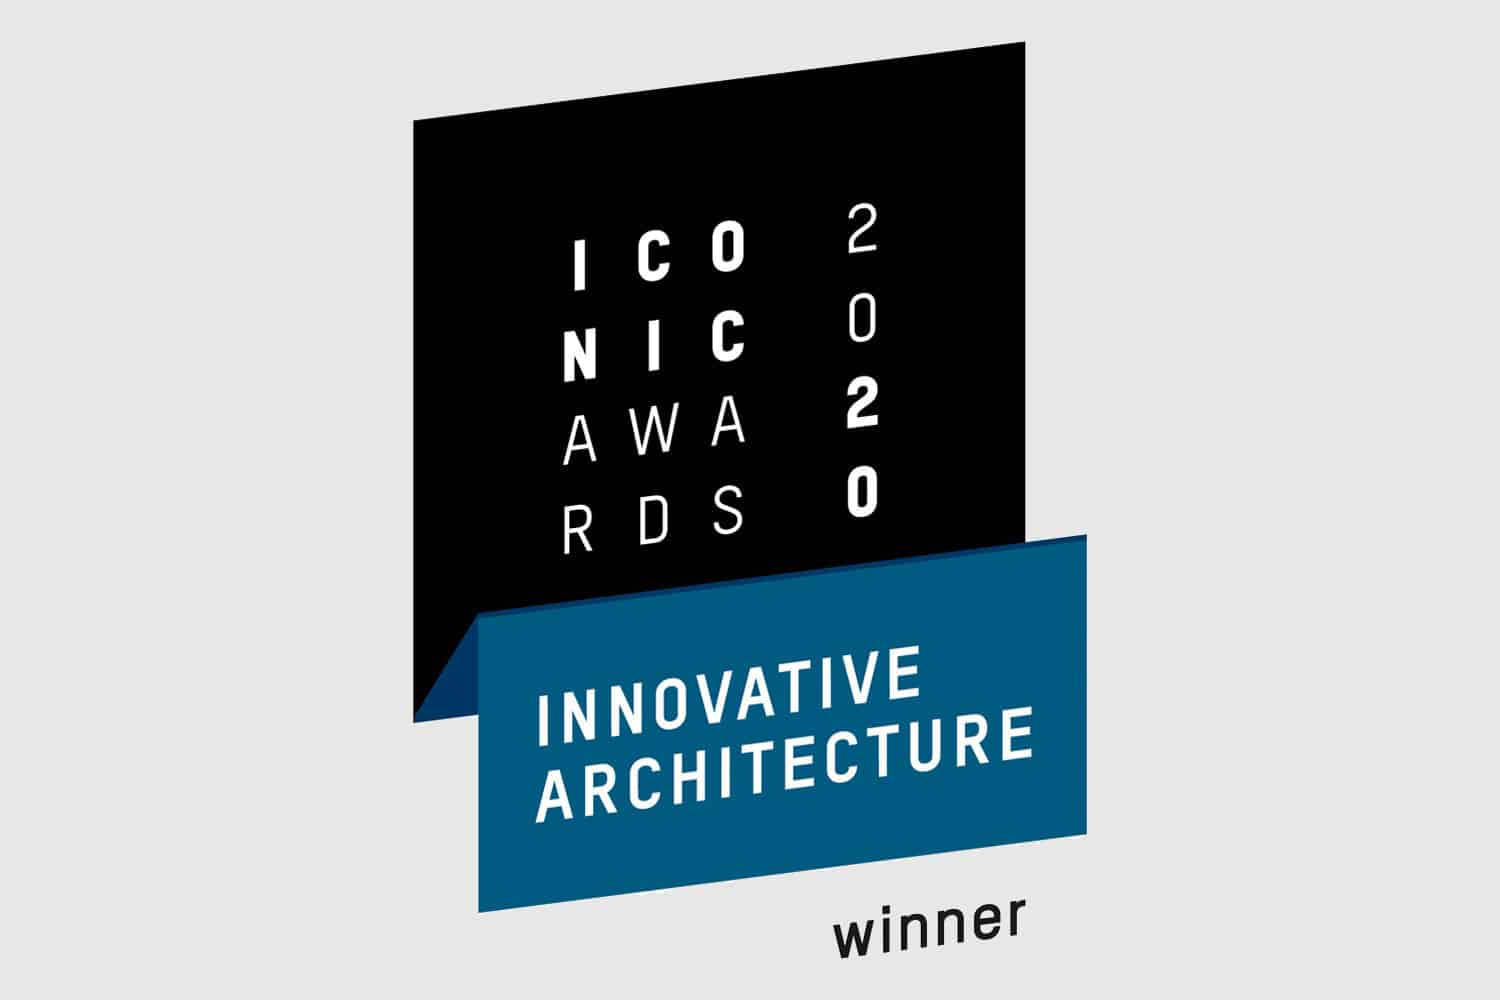 2020, Winner Iconic Awards | Quartier Riedenburg